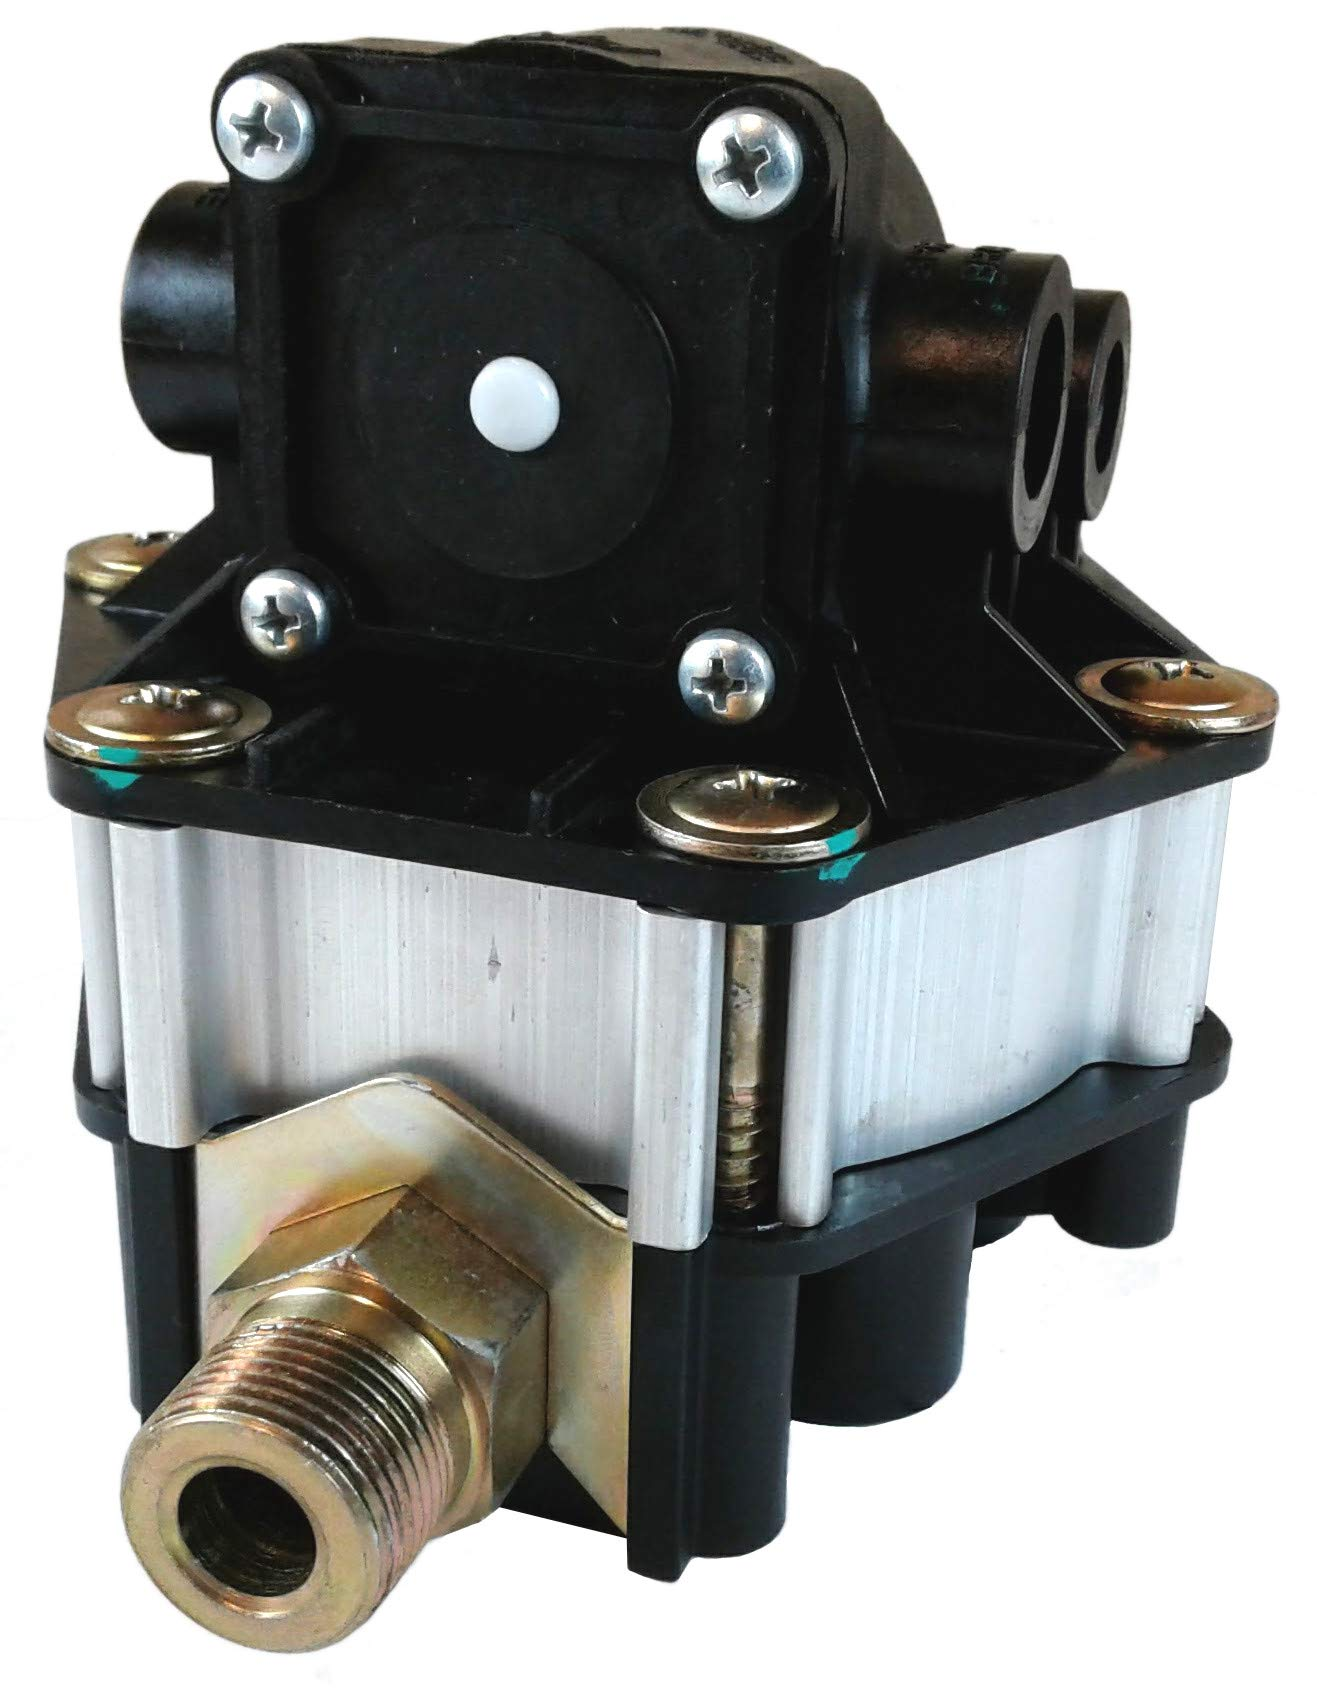 FF2 Full Function Trailer Brake Valve - 3/4'' Reservoir for Heavy Duty Big Rigs by Brianna Auto Parts (BAP) (Image #4)